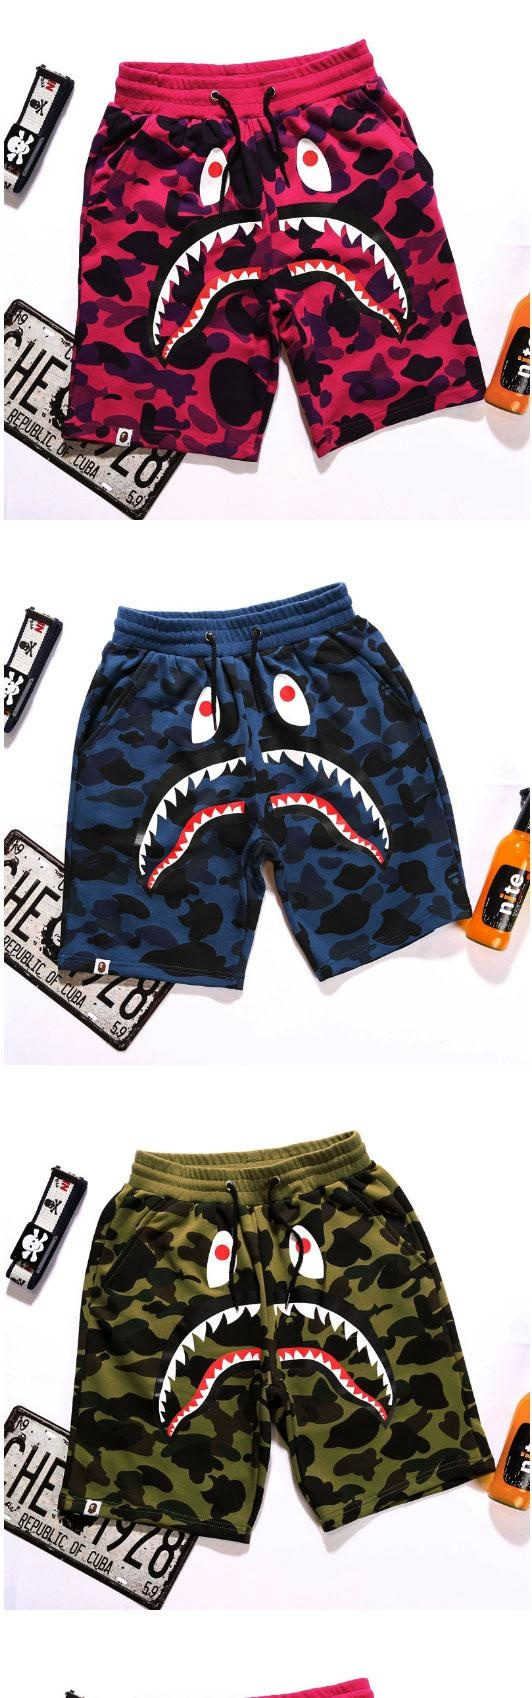 6a389bd91d Japan Niche Brand Bape!Factory Price!!40% off!!! Color:Red,Blue,Green  Size:M,L,XL,XXL(As your normal size)